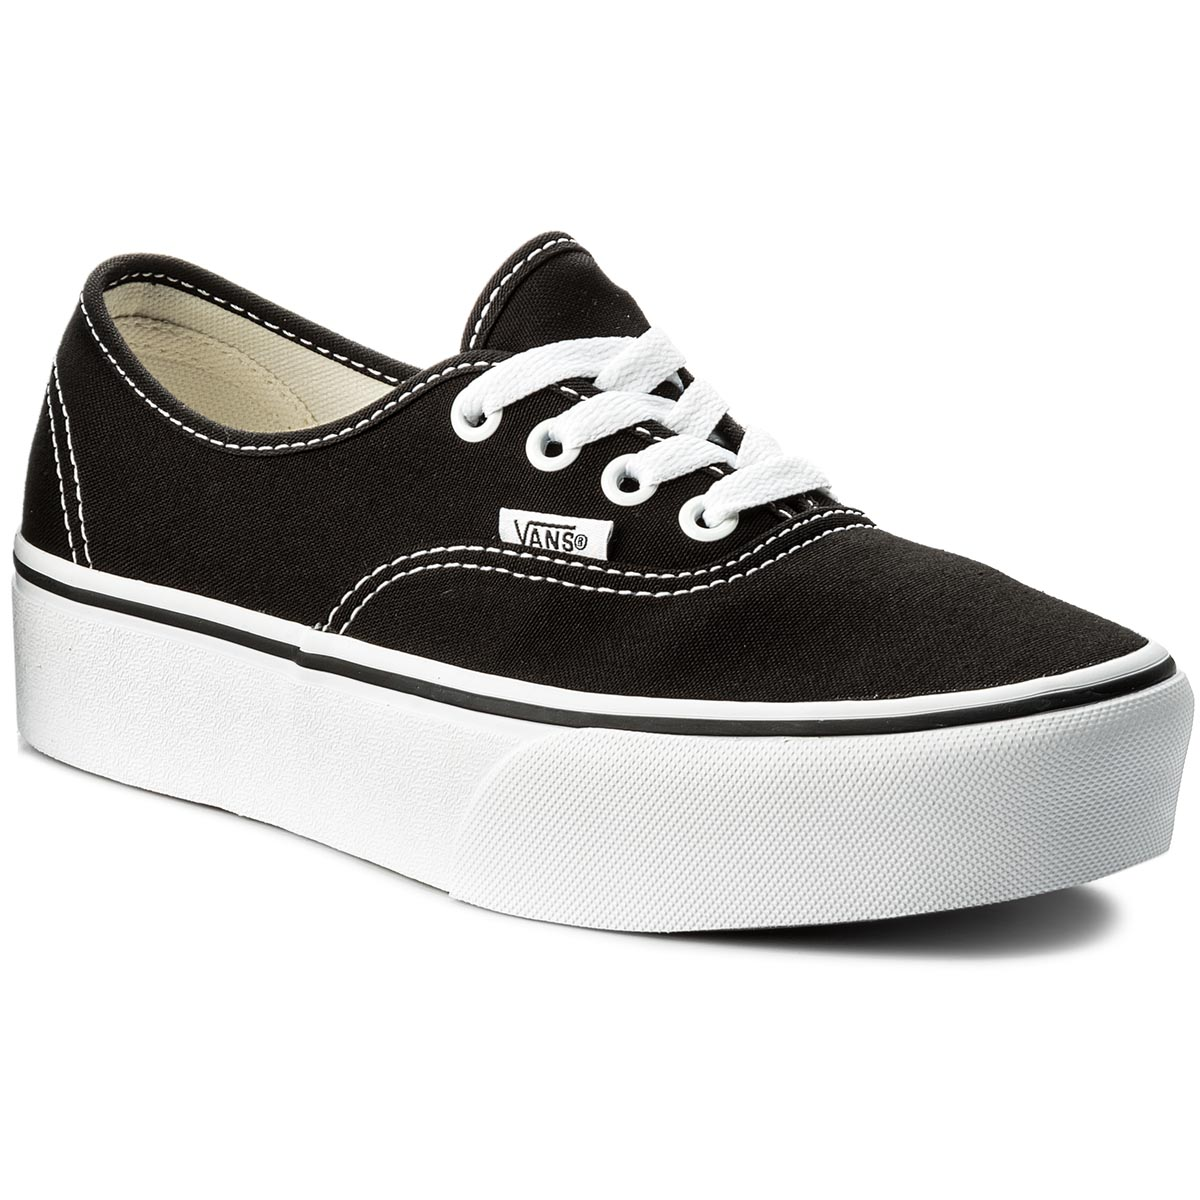 Teniși VANS - Authentic Platform VN0A3AV8BLK Black